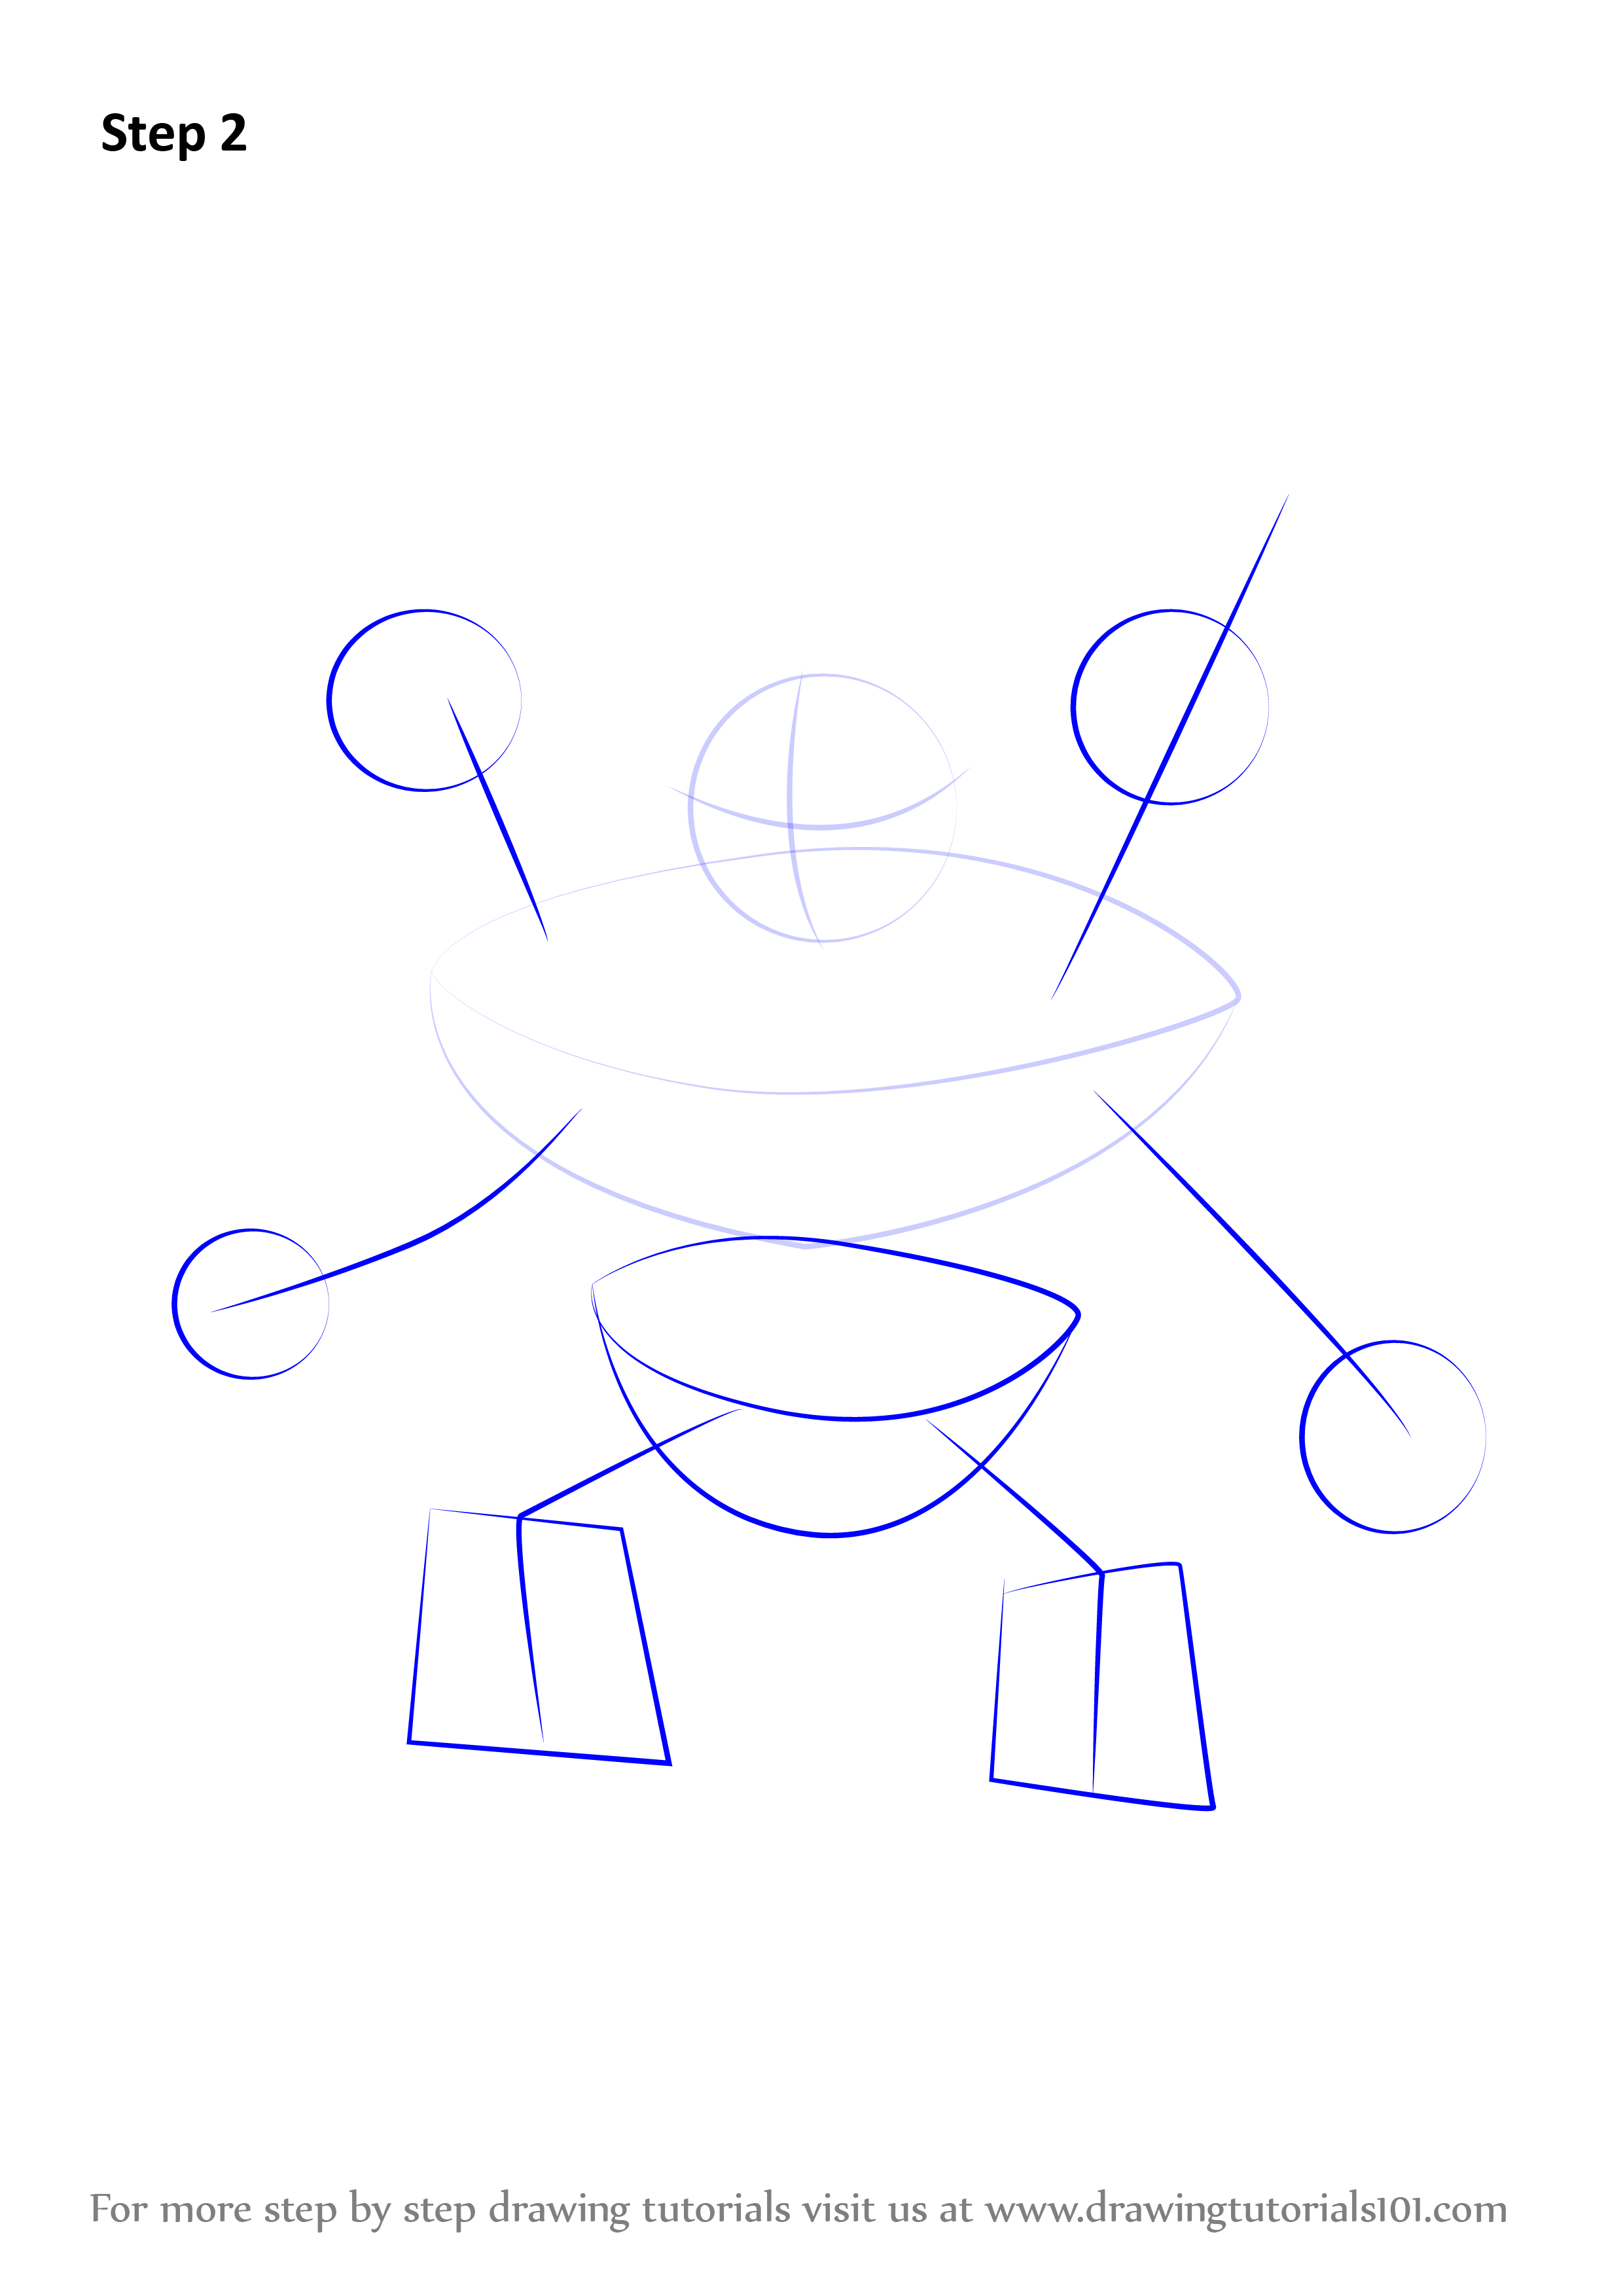 Draw Outline For Arms, Hands, Legs & Feet & Hip Also Draw Four Circles